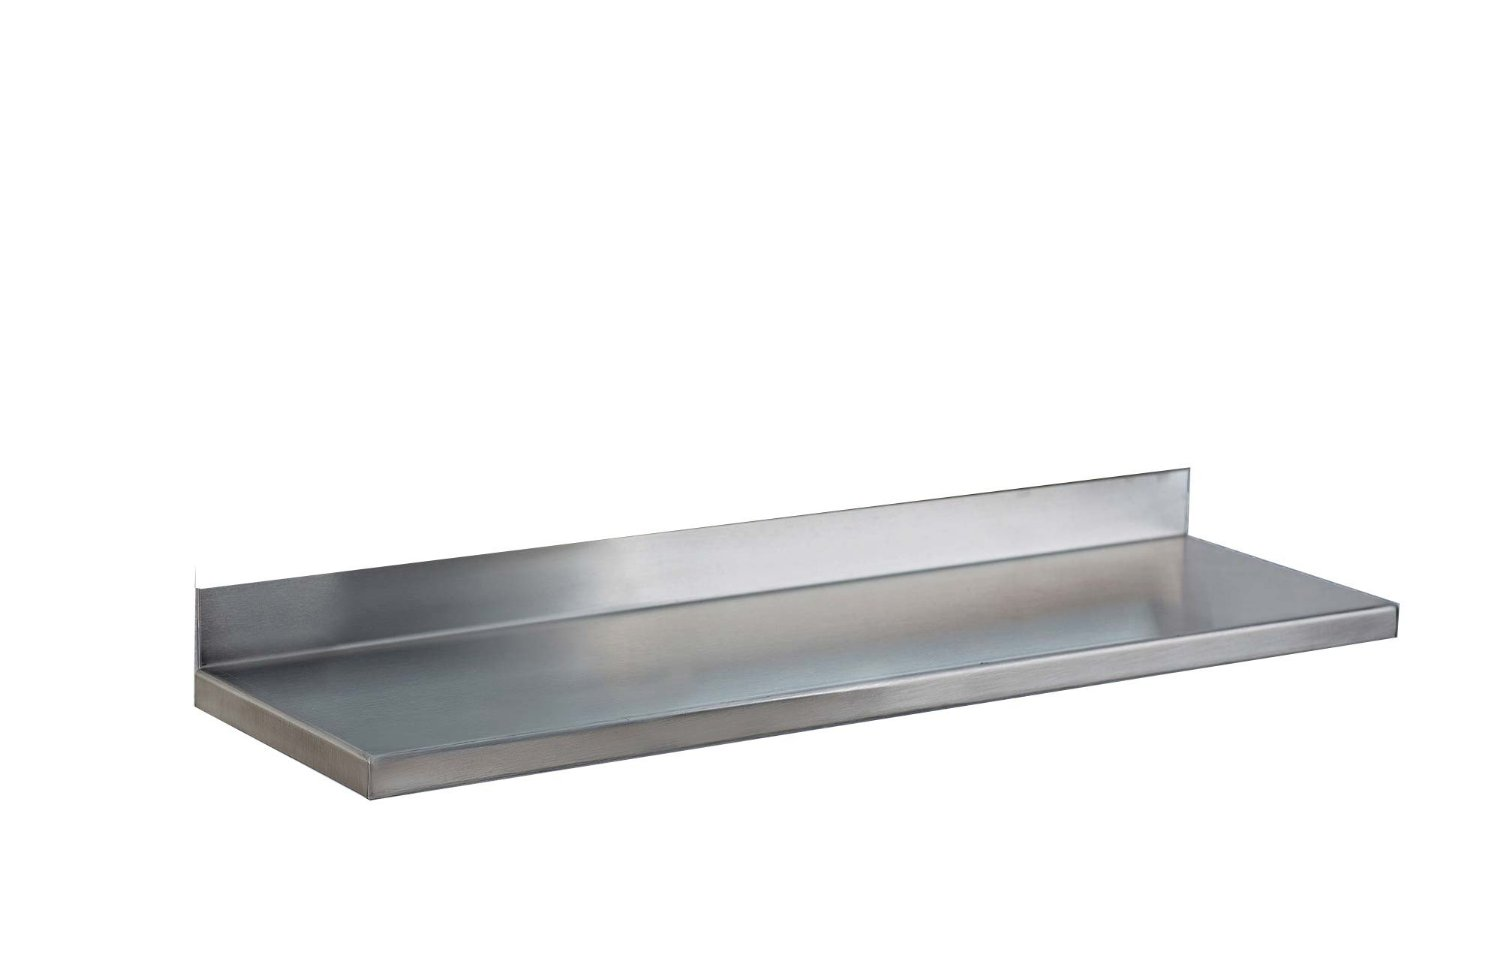 36-inch x 6-inch, Integral shelf, satin finish